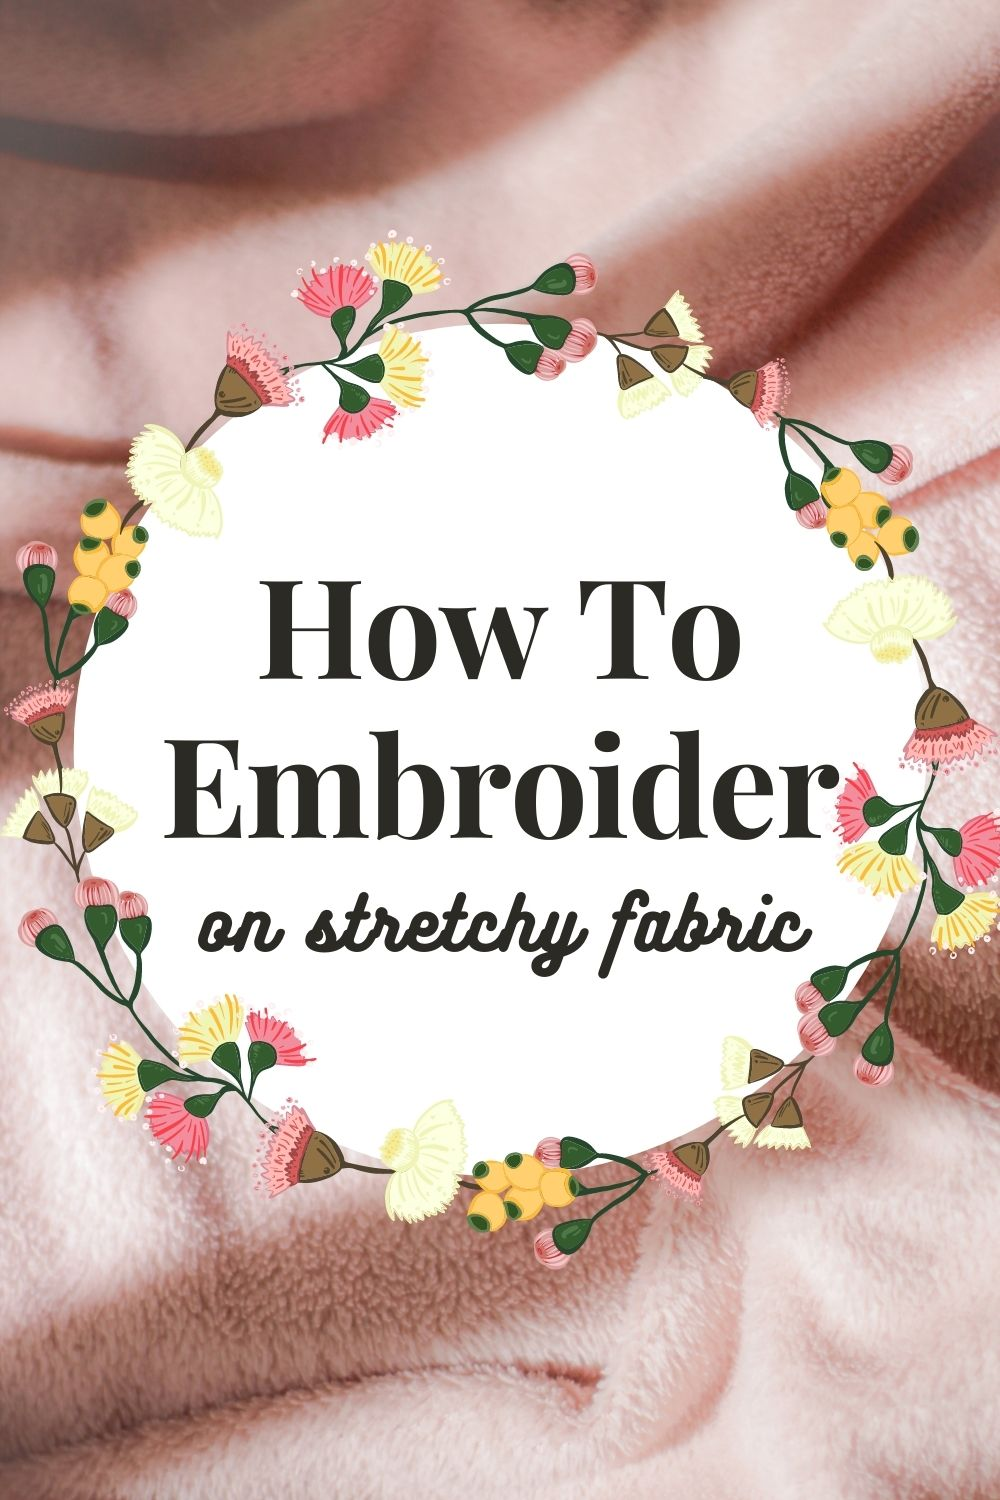 how to embroider on stretchy fabric